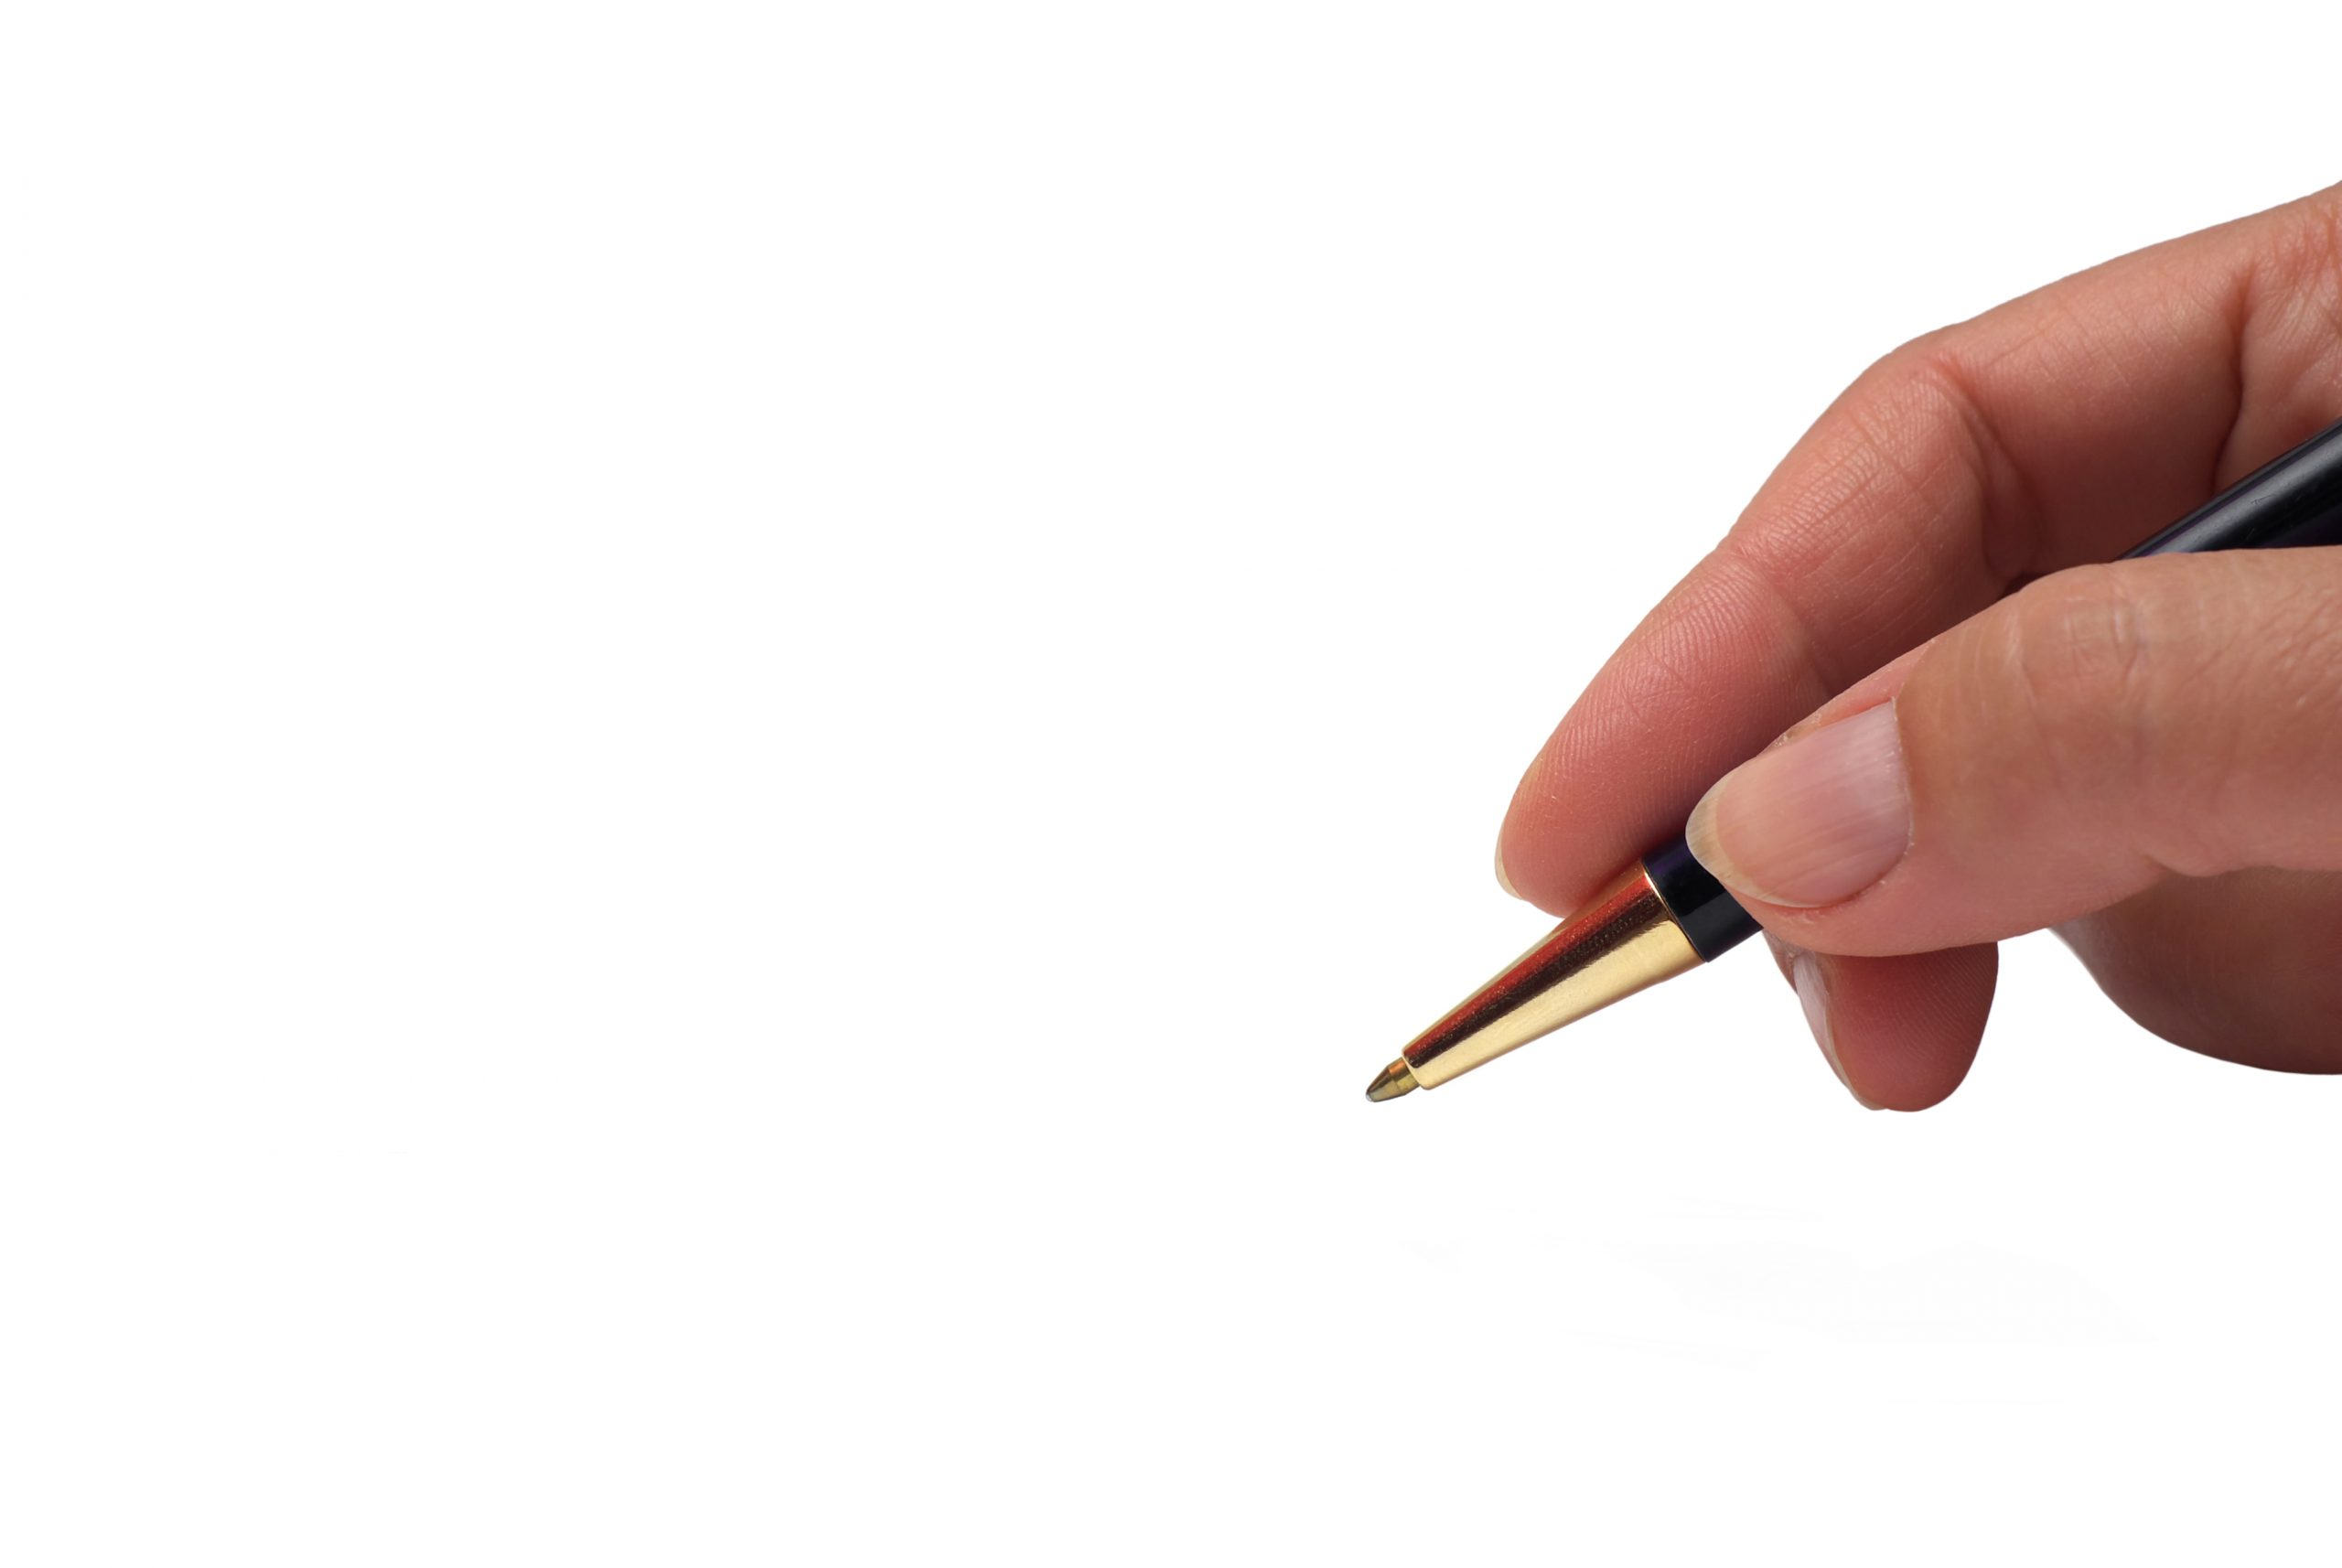 Hand with pen signing on white background. Isolated on white background